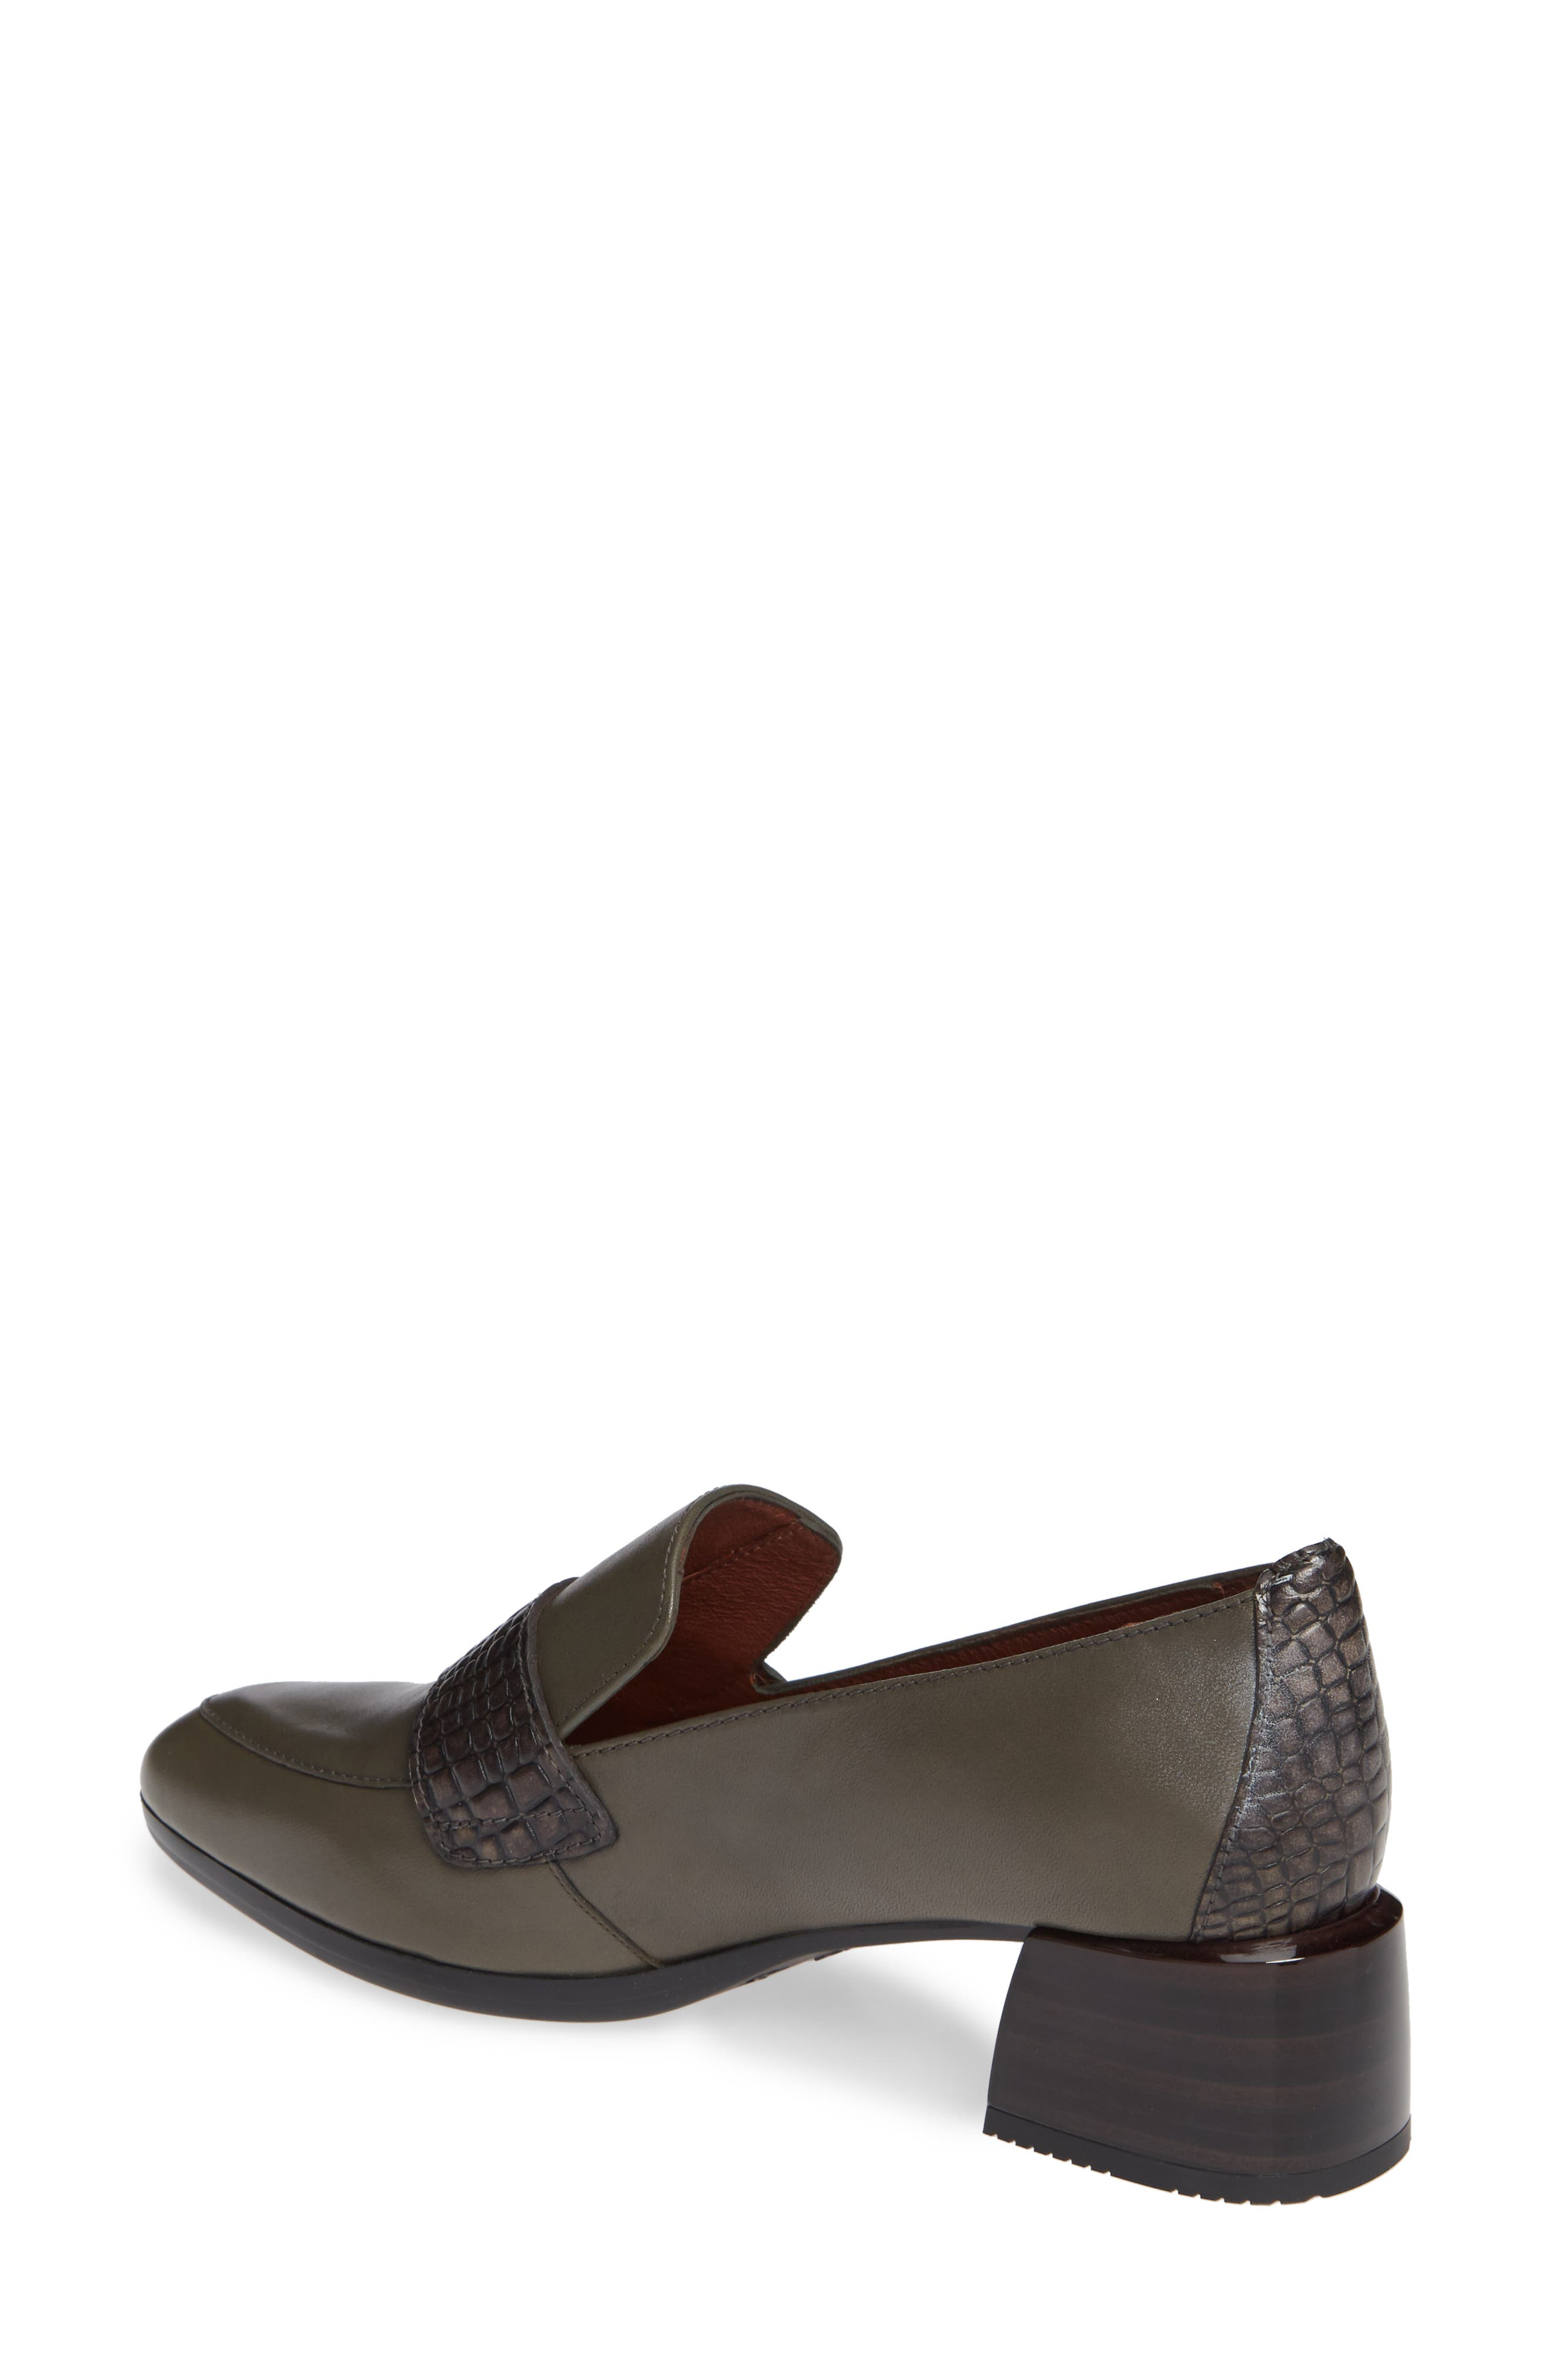 HISPANITAS,                             Gabrianna Block Heel Loafer,                             Alternate thumbnail 2, color,                             SOHO ARMY/ CAIMAN ARMY LEATHER